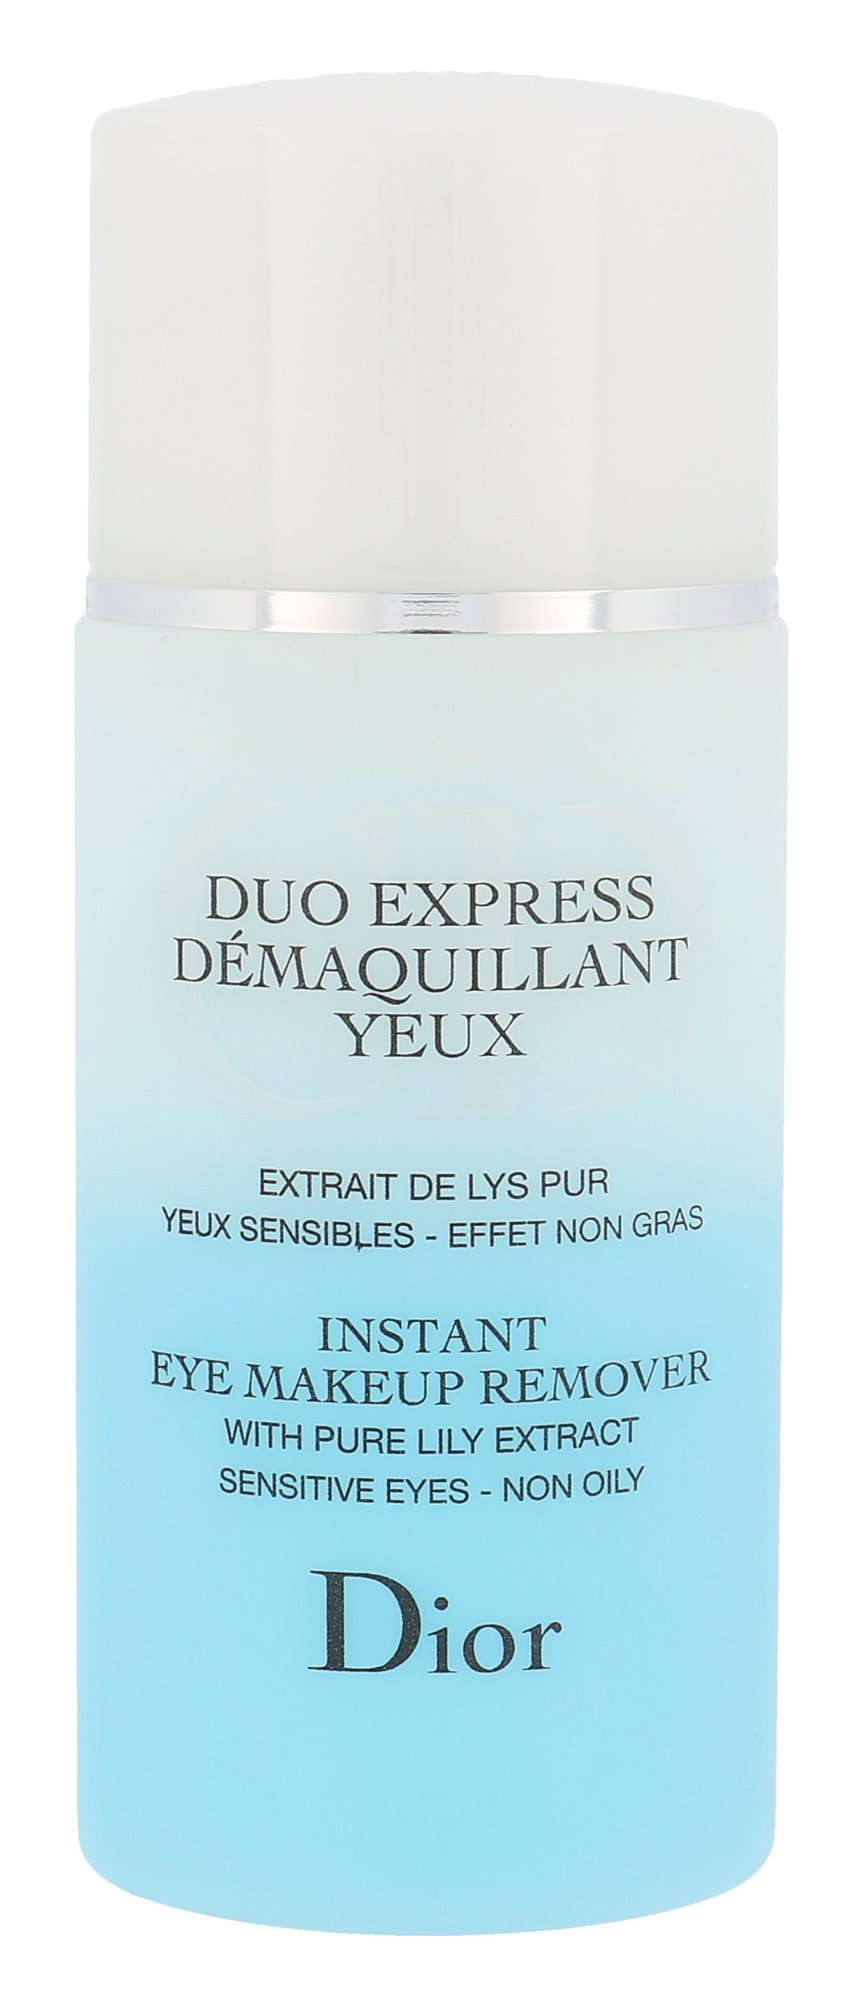 Christian Dior Instant Eye Makeup Remover Cosmetic 125ml